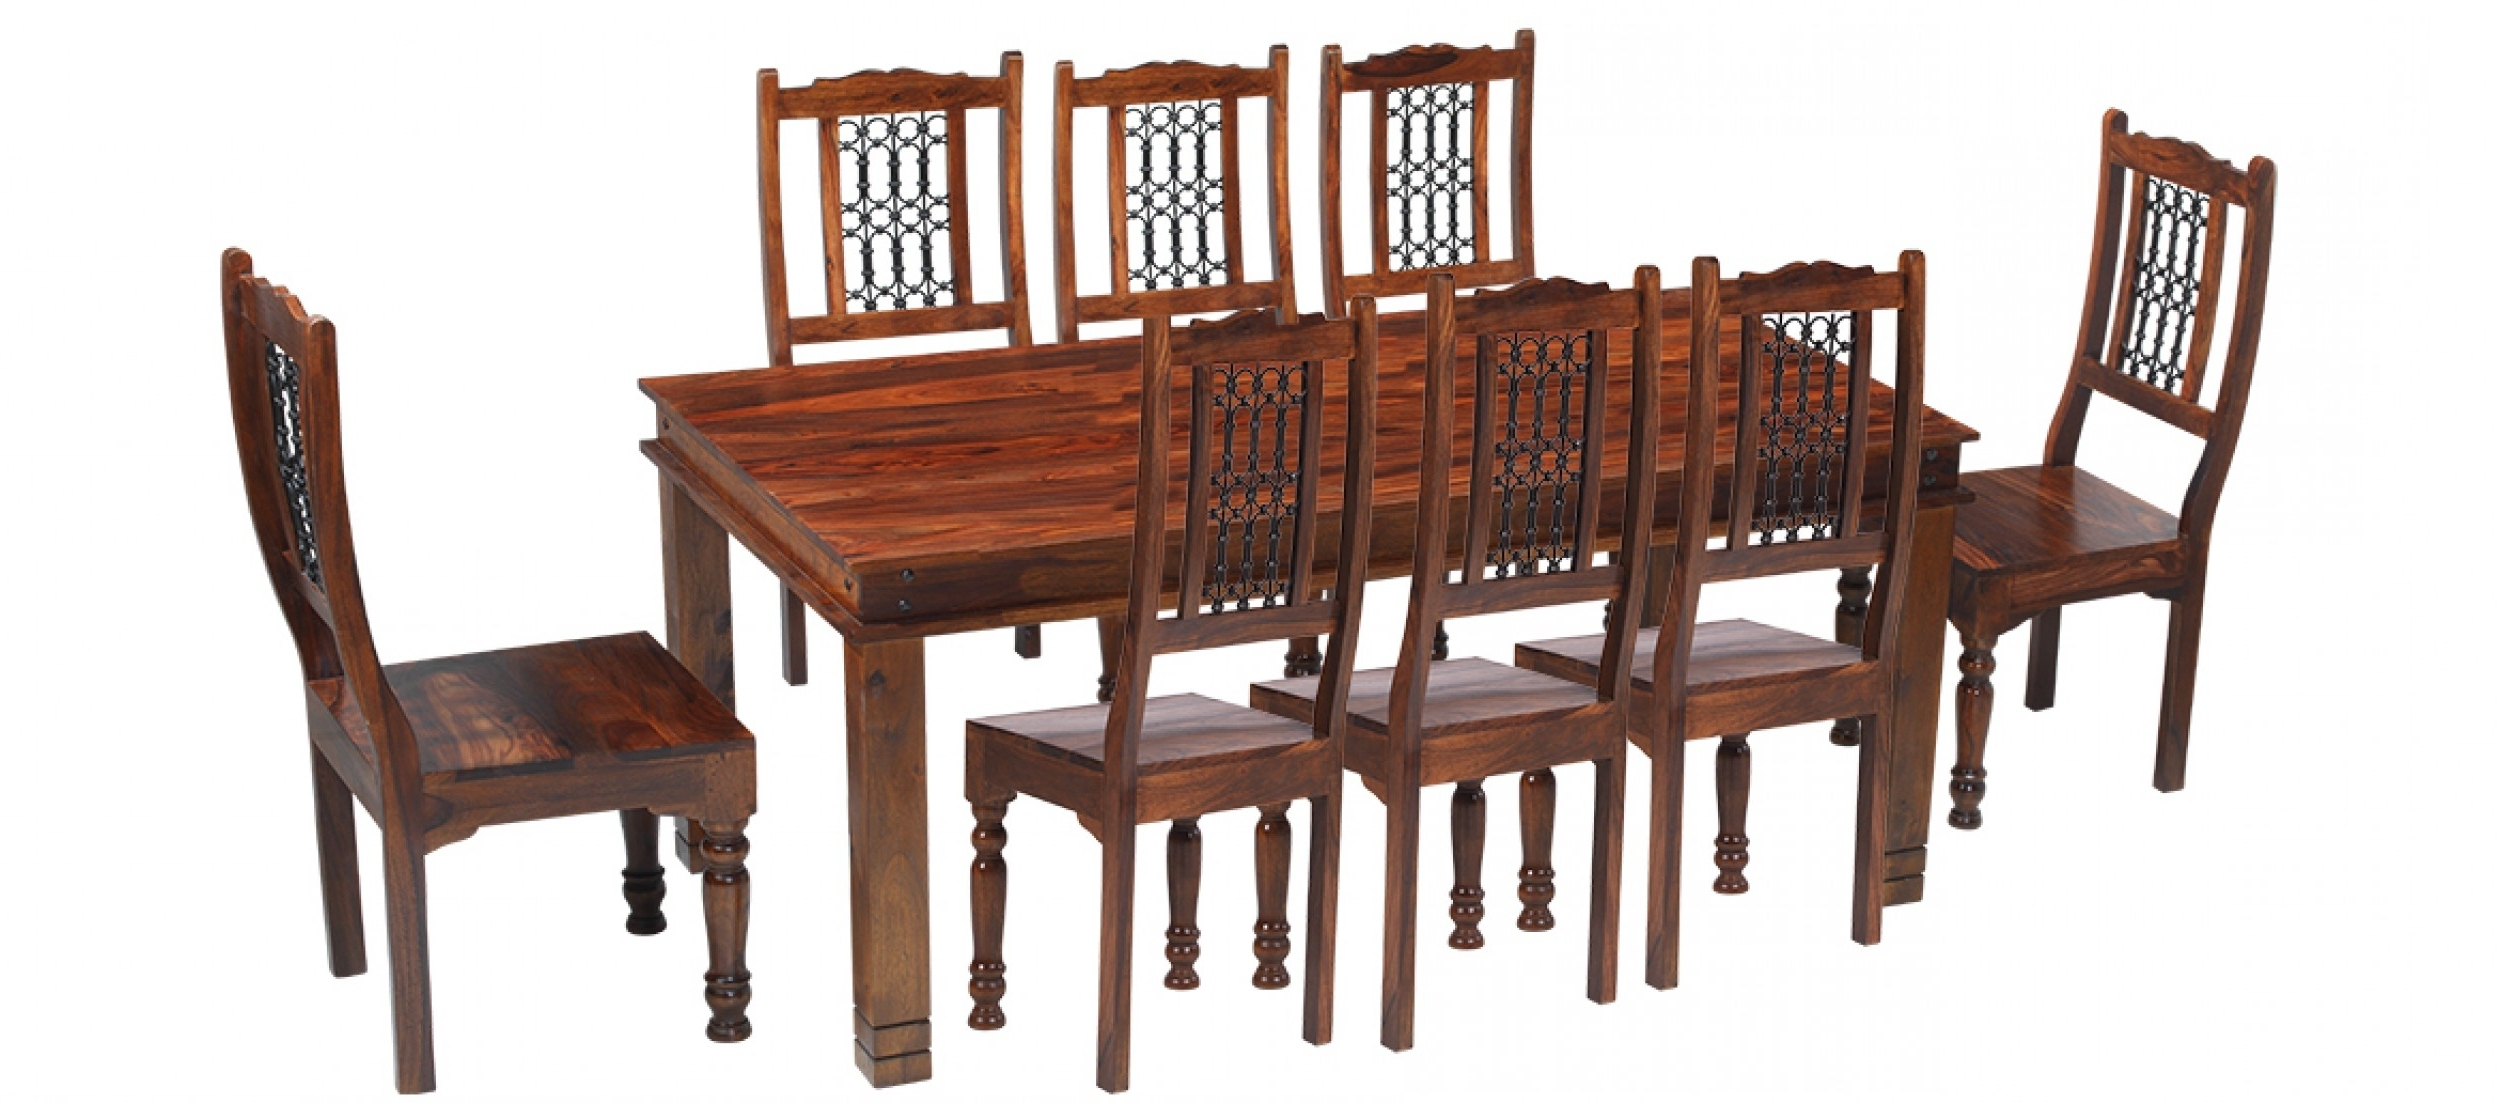 8 Chairs Dining Tables Regarding 2018 Jali Sheesham 200 Cm Chunky Dining Table And 8 Chairs (View 4 of 25)